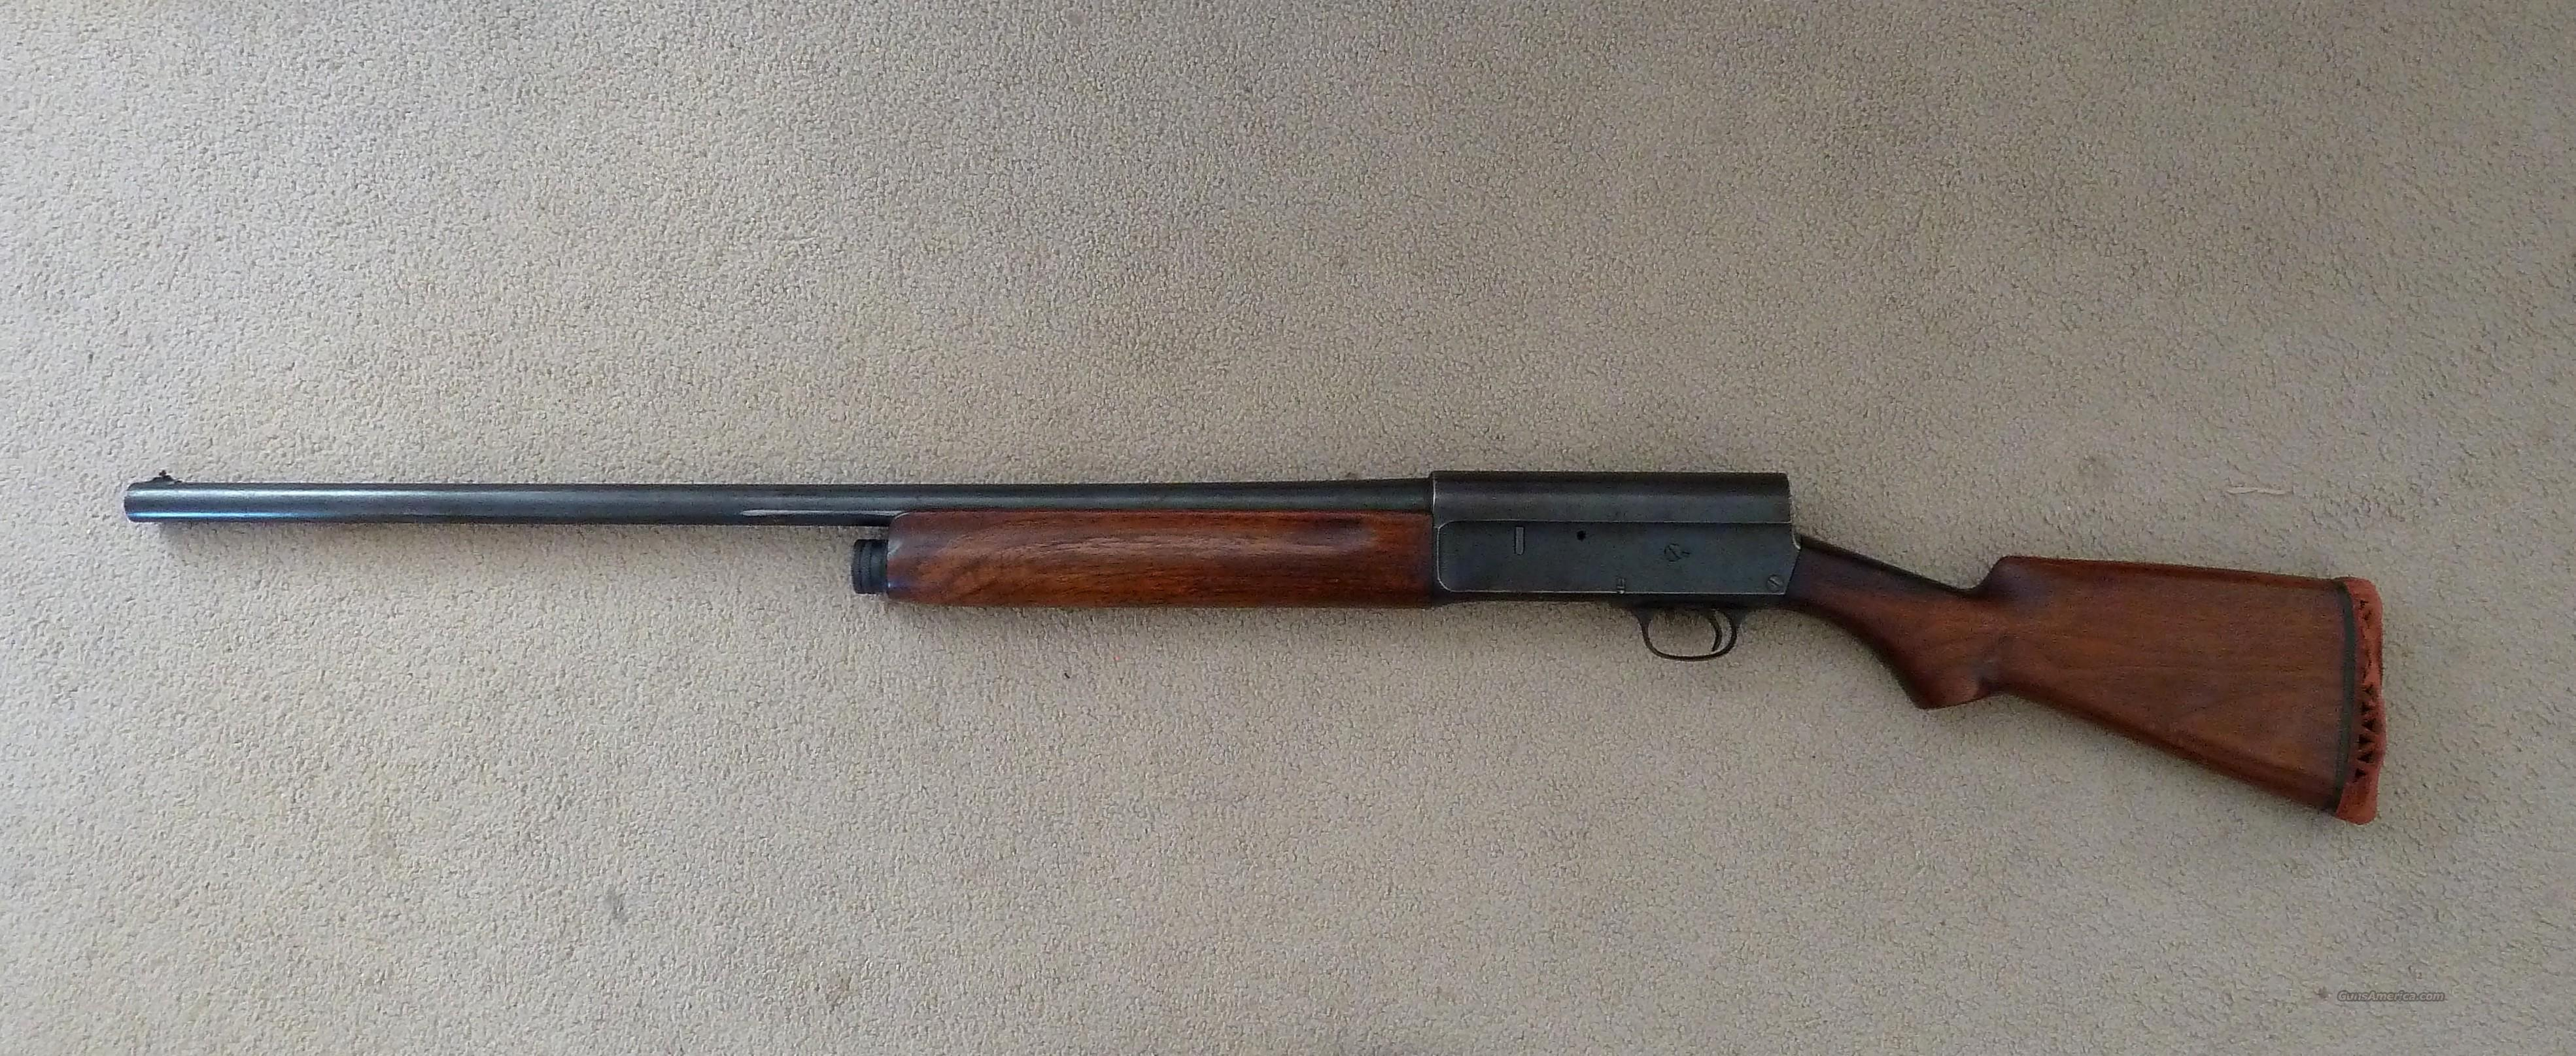 Remington Arms - Model 11 - 12ga. Autoloading Shotgun  Guns > Shotguns > Remington Shotguns  > Autoloaders > Hunting